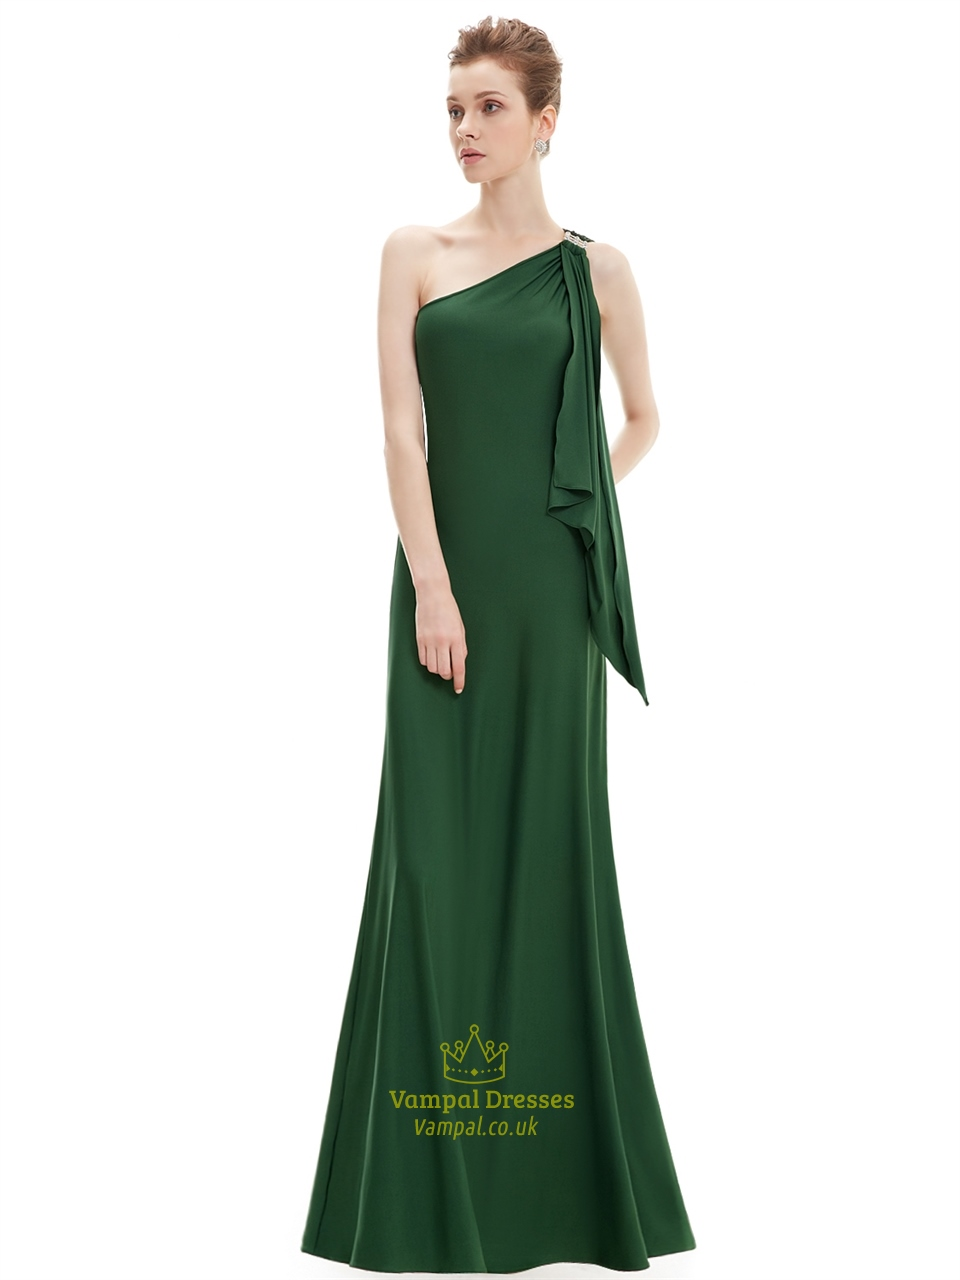 Emerald Green One Shoulder Chiffon Bridesmaid Dresses With Ruffles Vampal Dresses